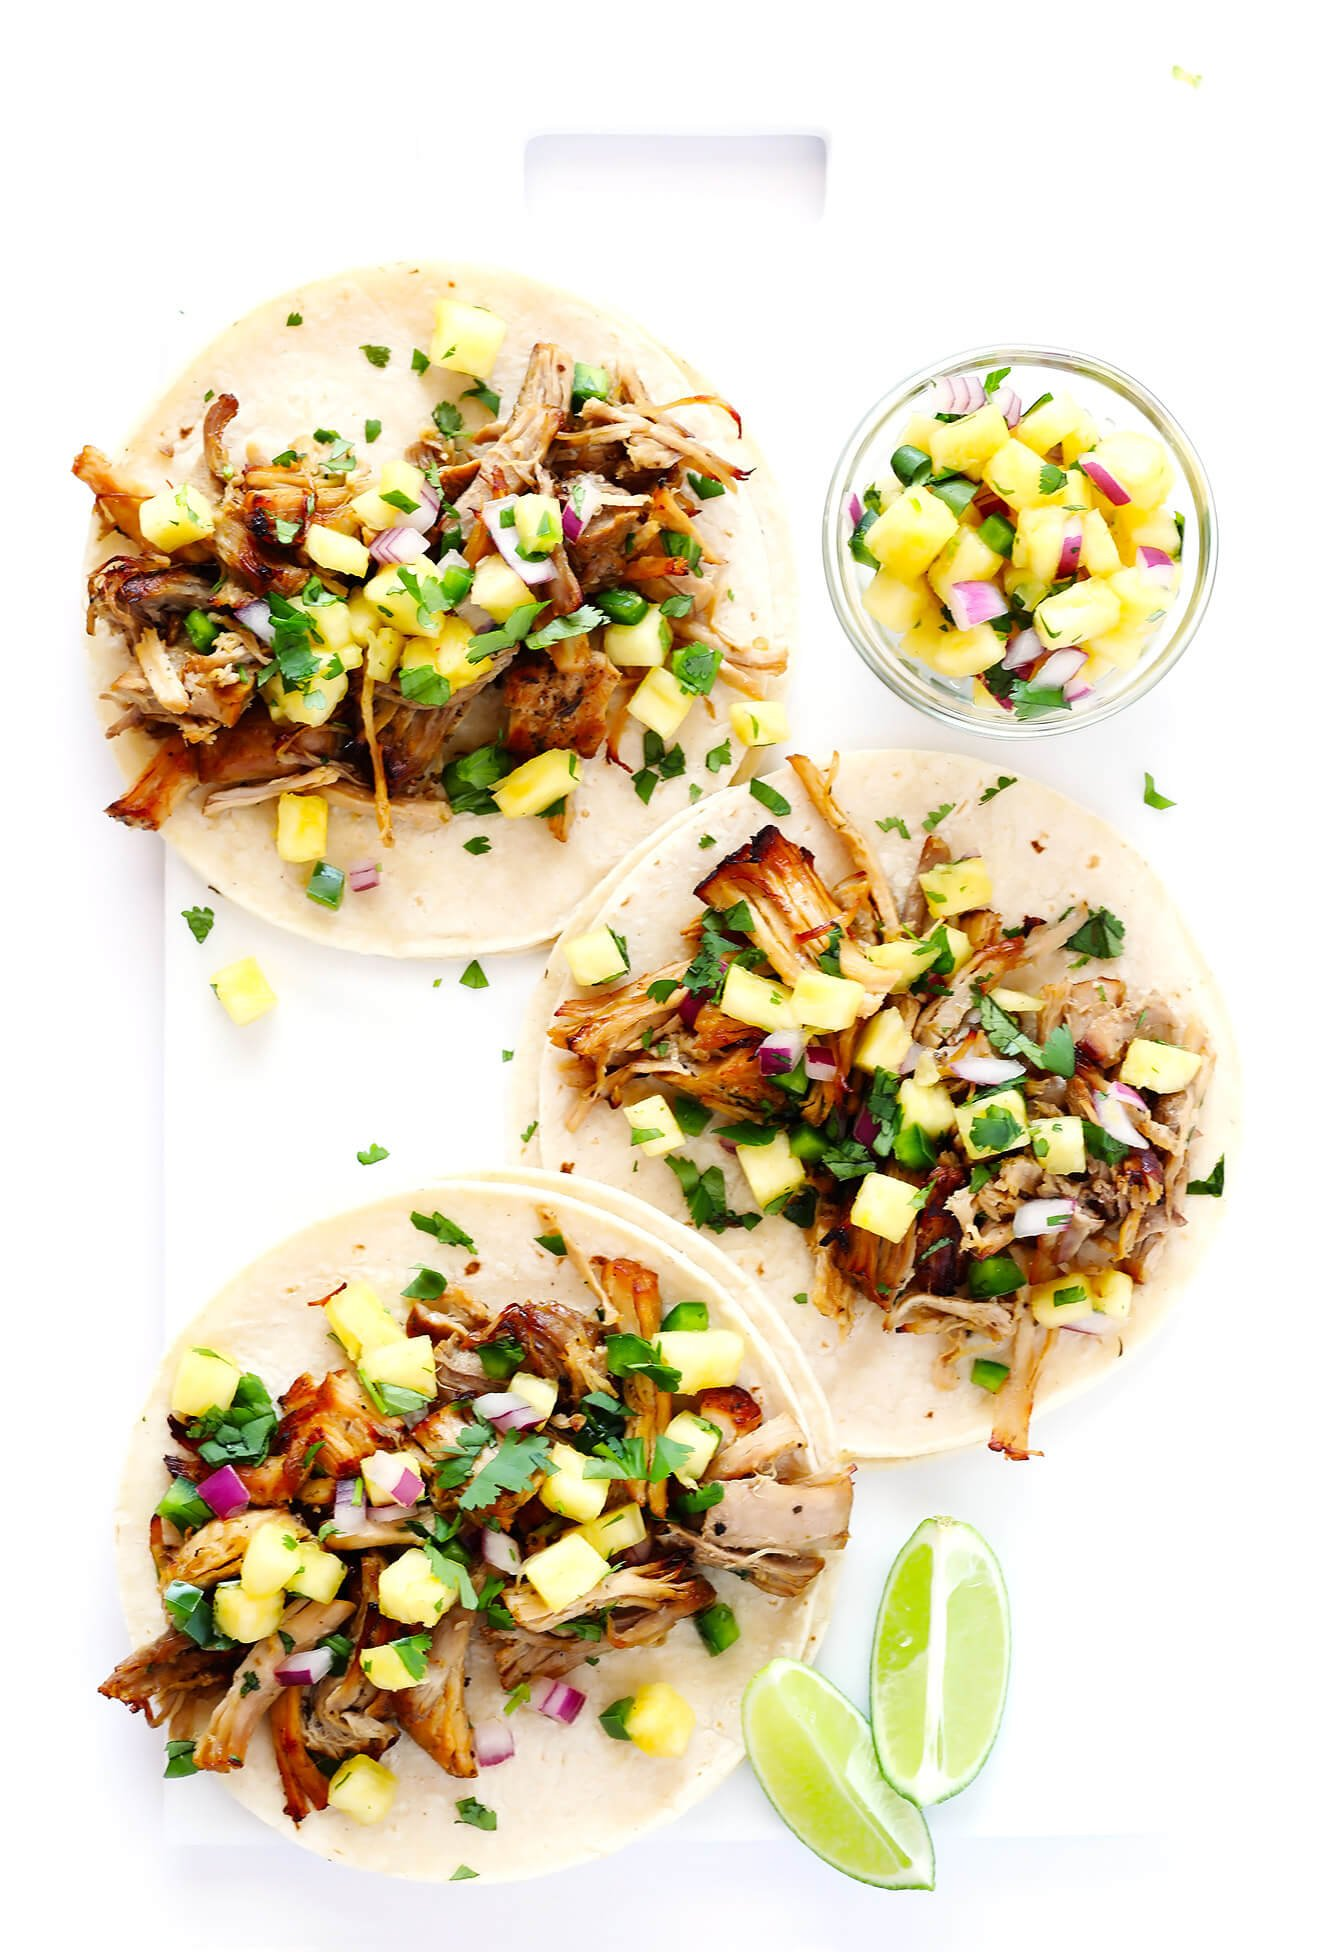 These Instant Pot Pork Carnitas Tacos are marinated in an easy mojo sauce, and SO delicious! | gimmesomeoven.com